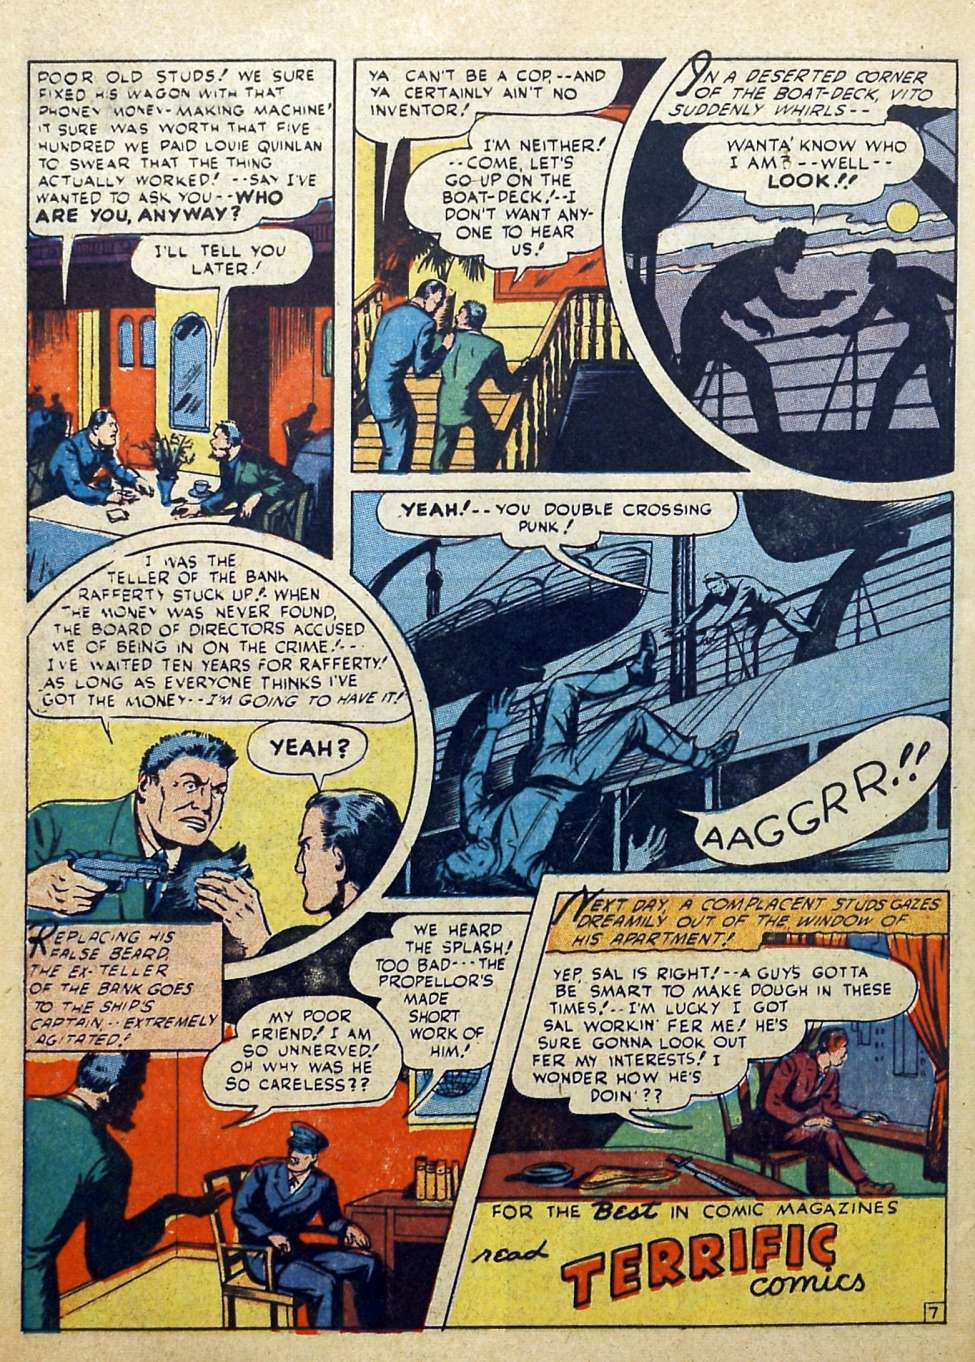 Suspense Comics #3 from 1944 44